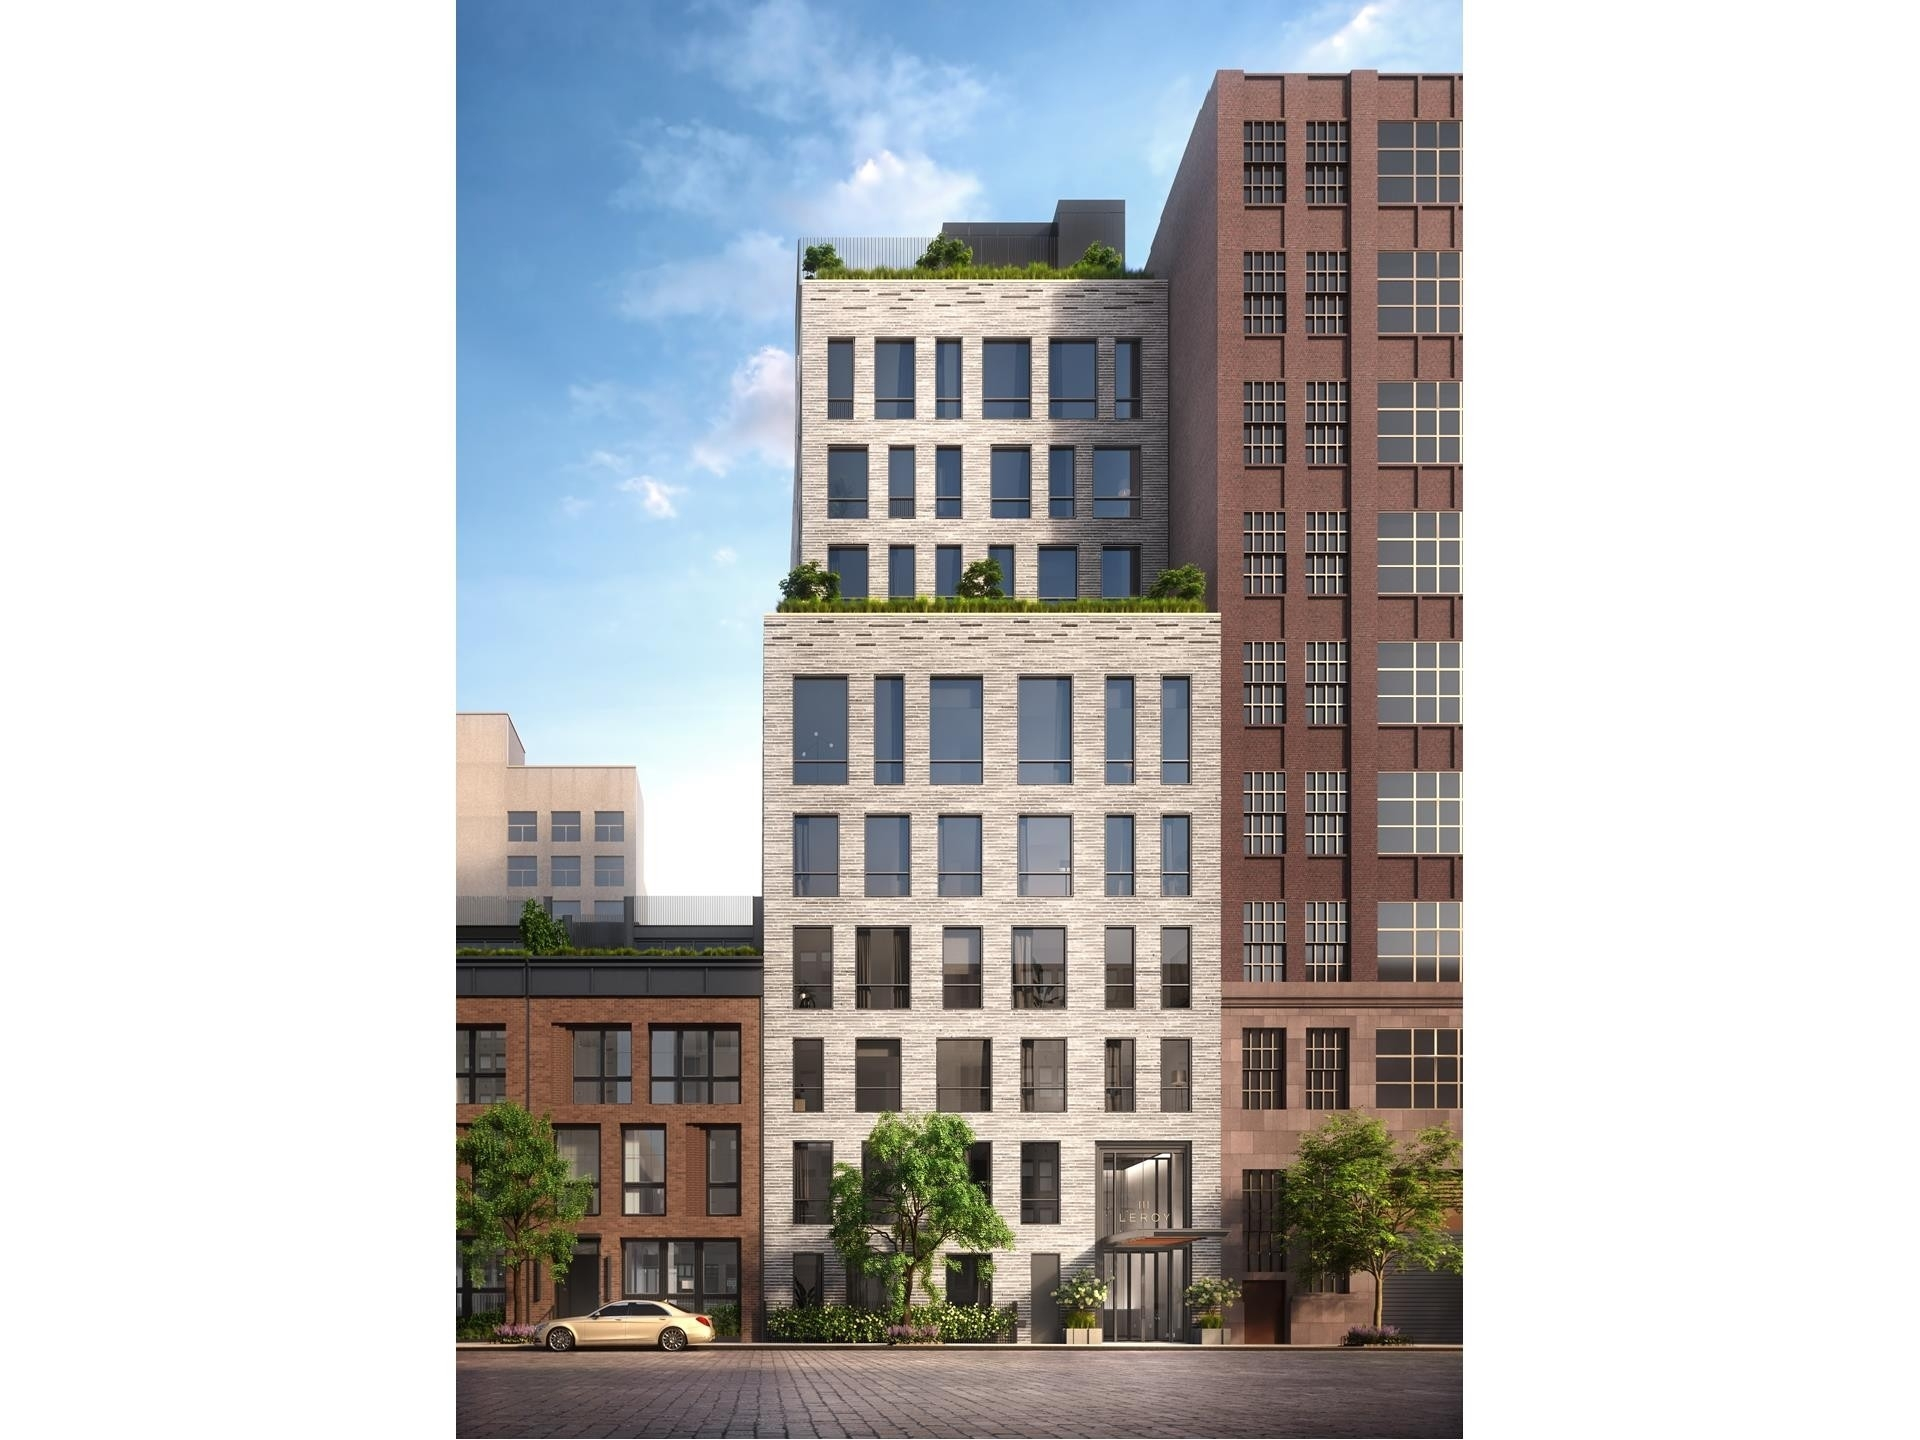 11. Condominiums for Sale at 111 Leroy St, 4 West Village, New York, NY 10014